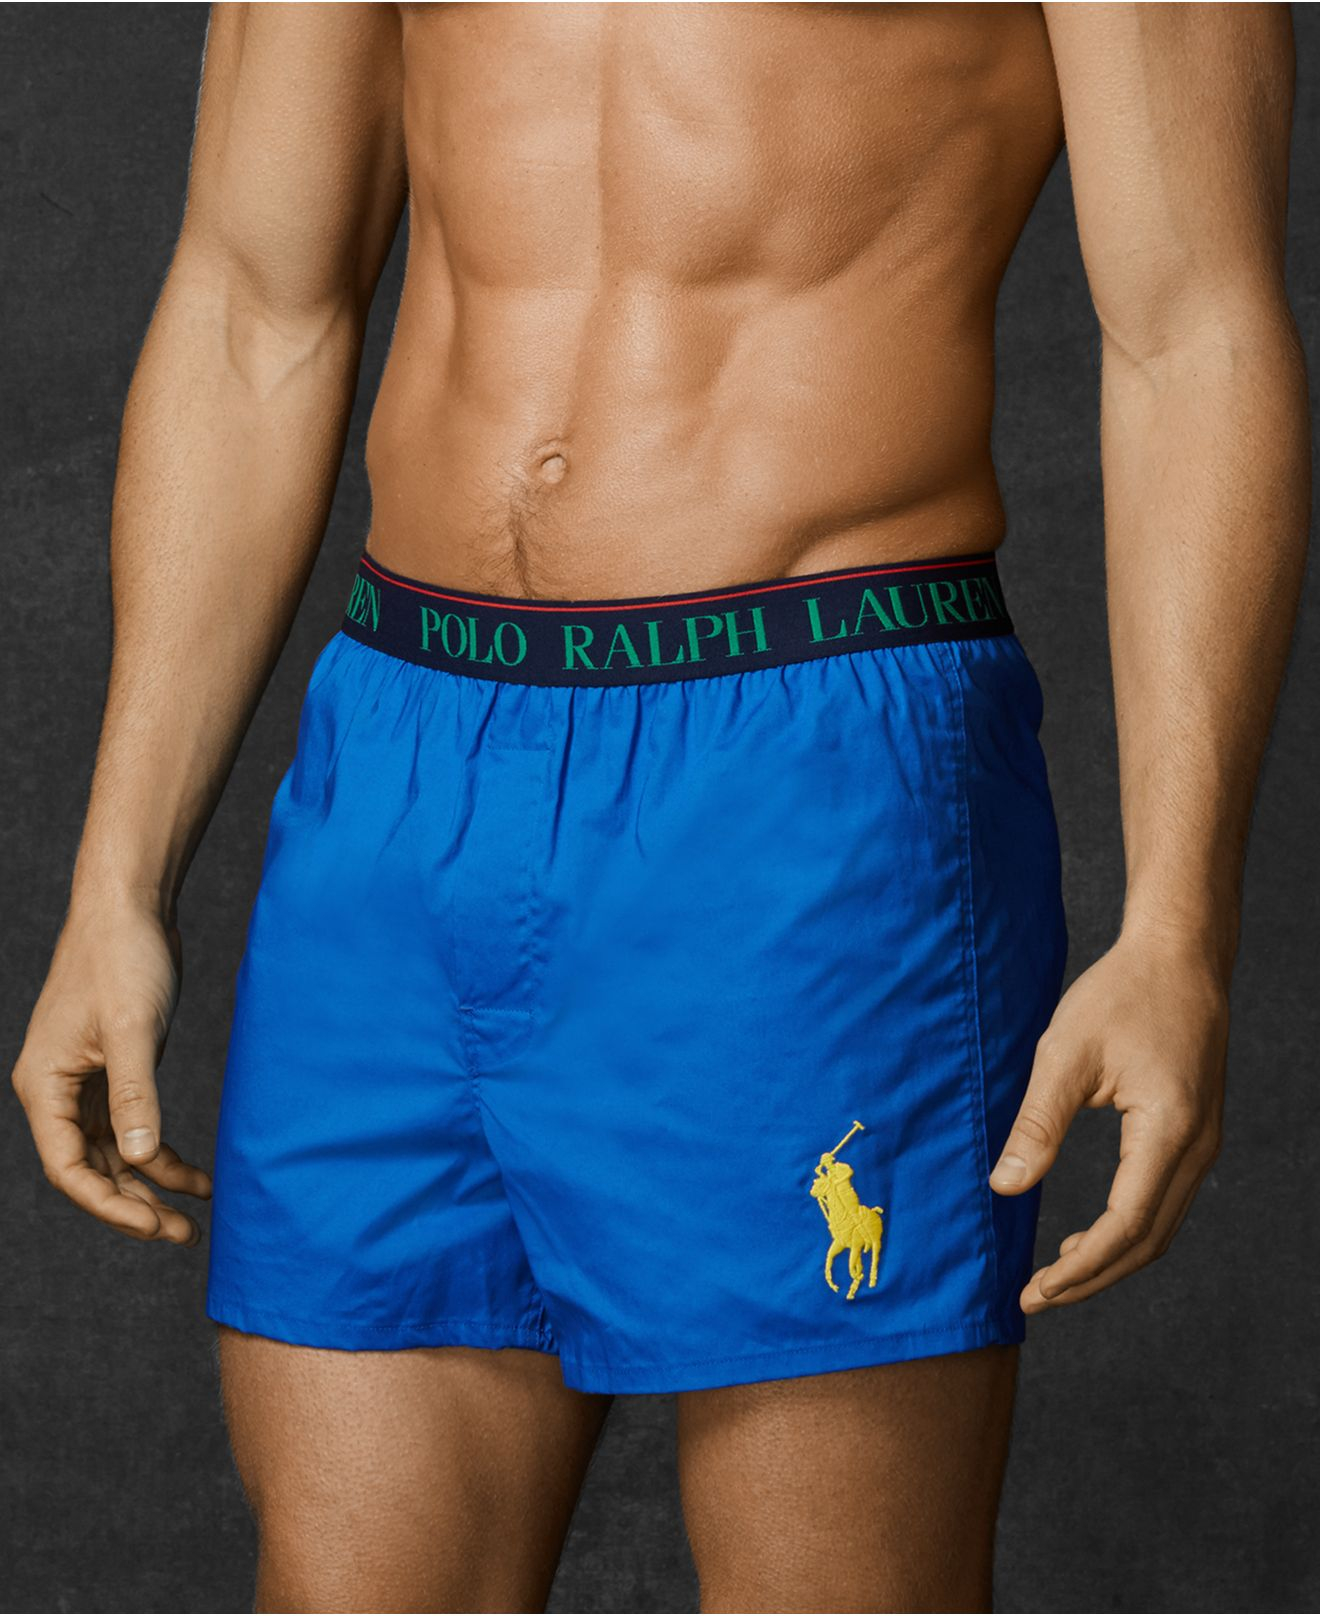 polo ralph lauren men 39 s stretch woven boxers in blue for. Black Bedroom Furniture Sets. Home Design Ideas